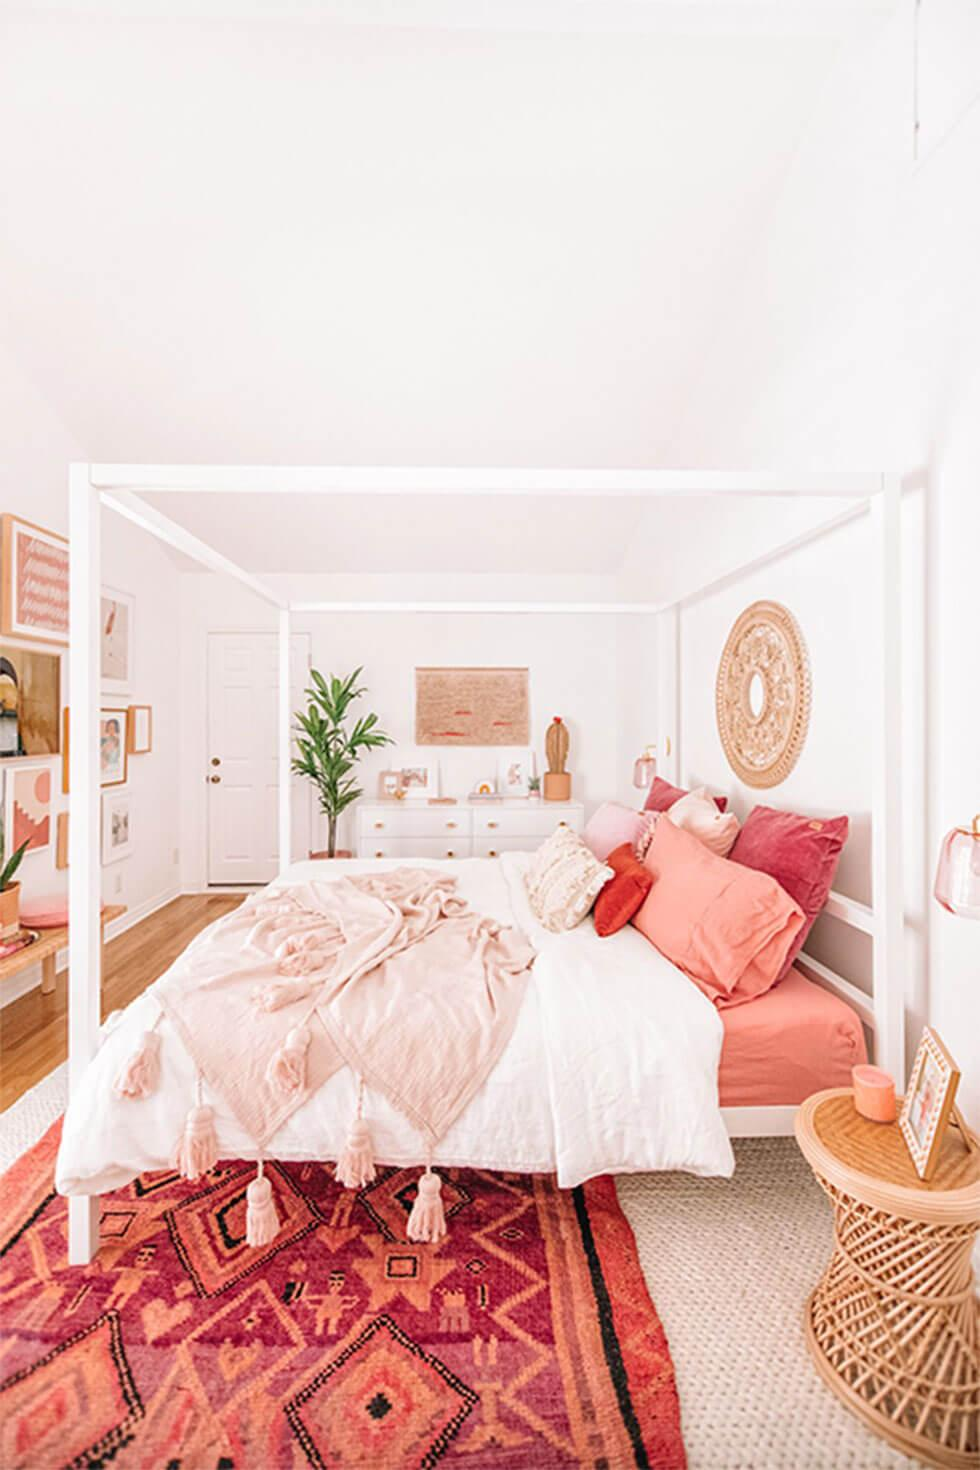 White bedroom with pink decor and canopy bed.